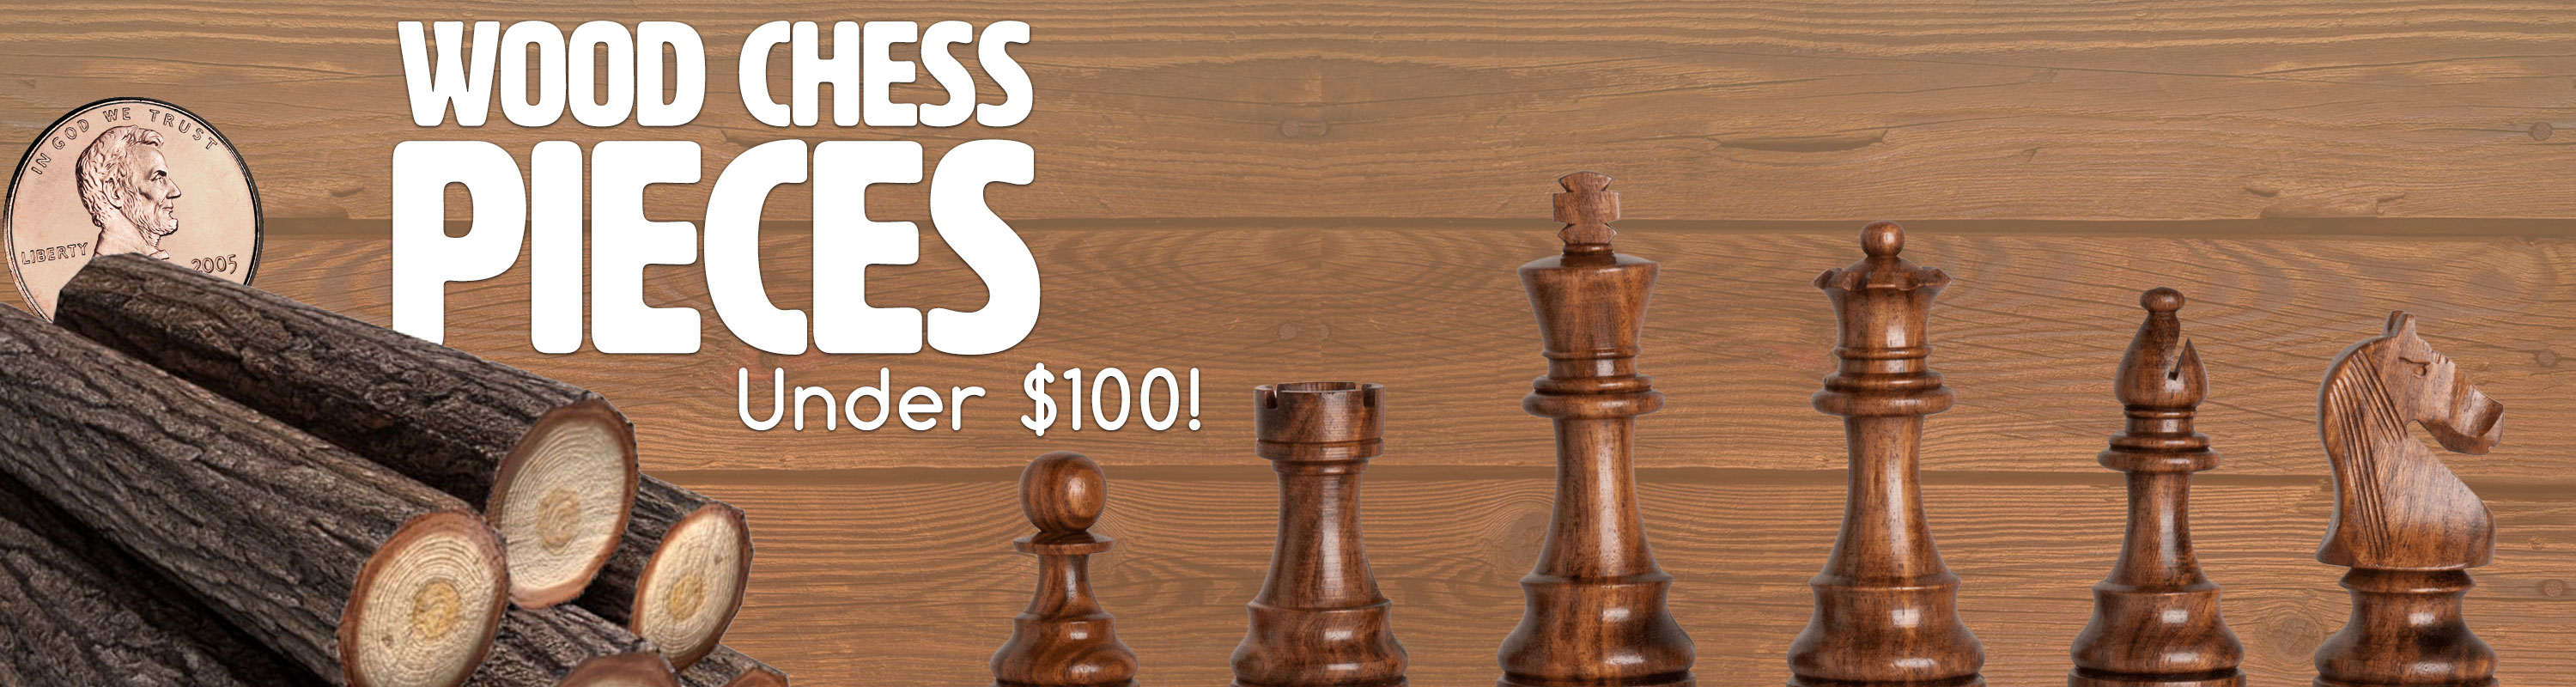 Wood Chess Pieces under $100